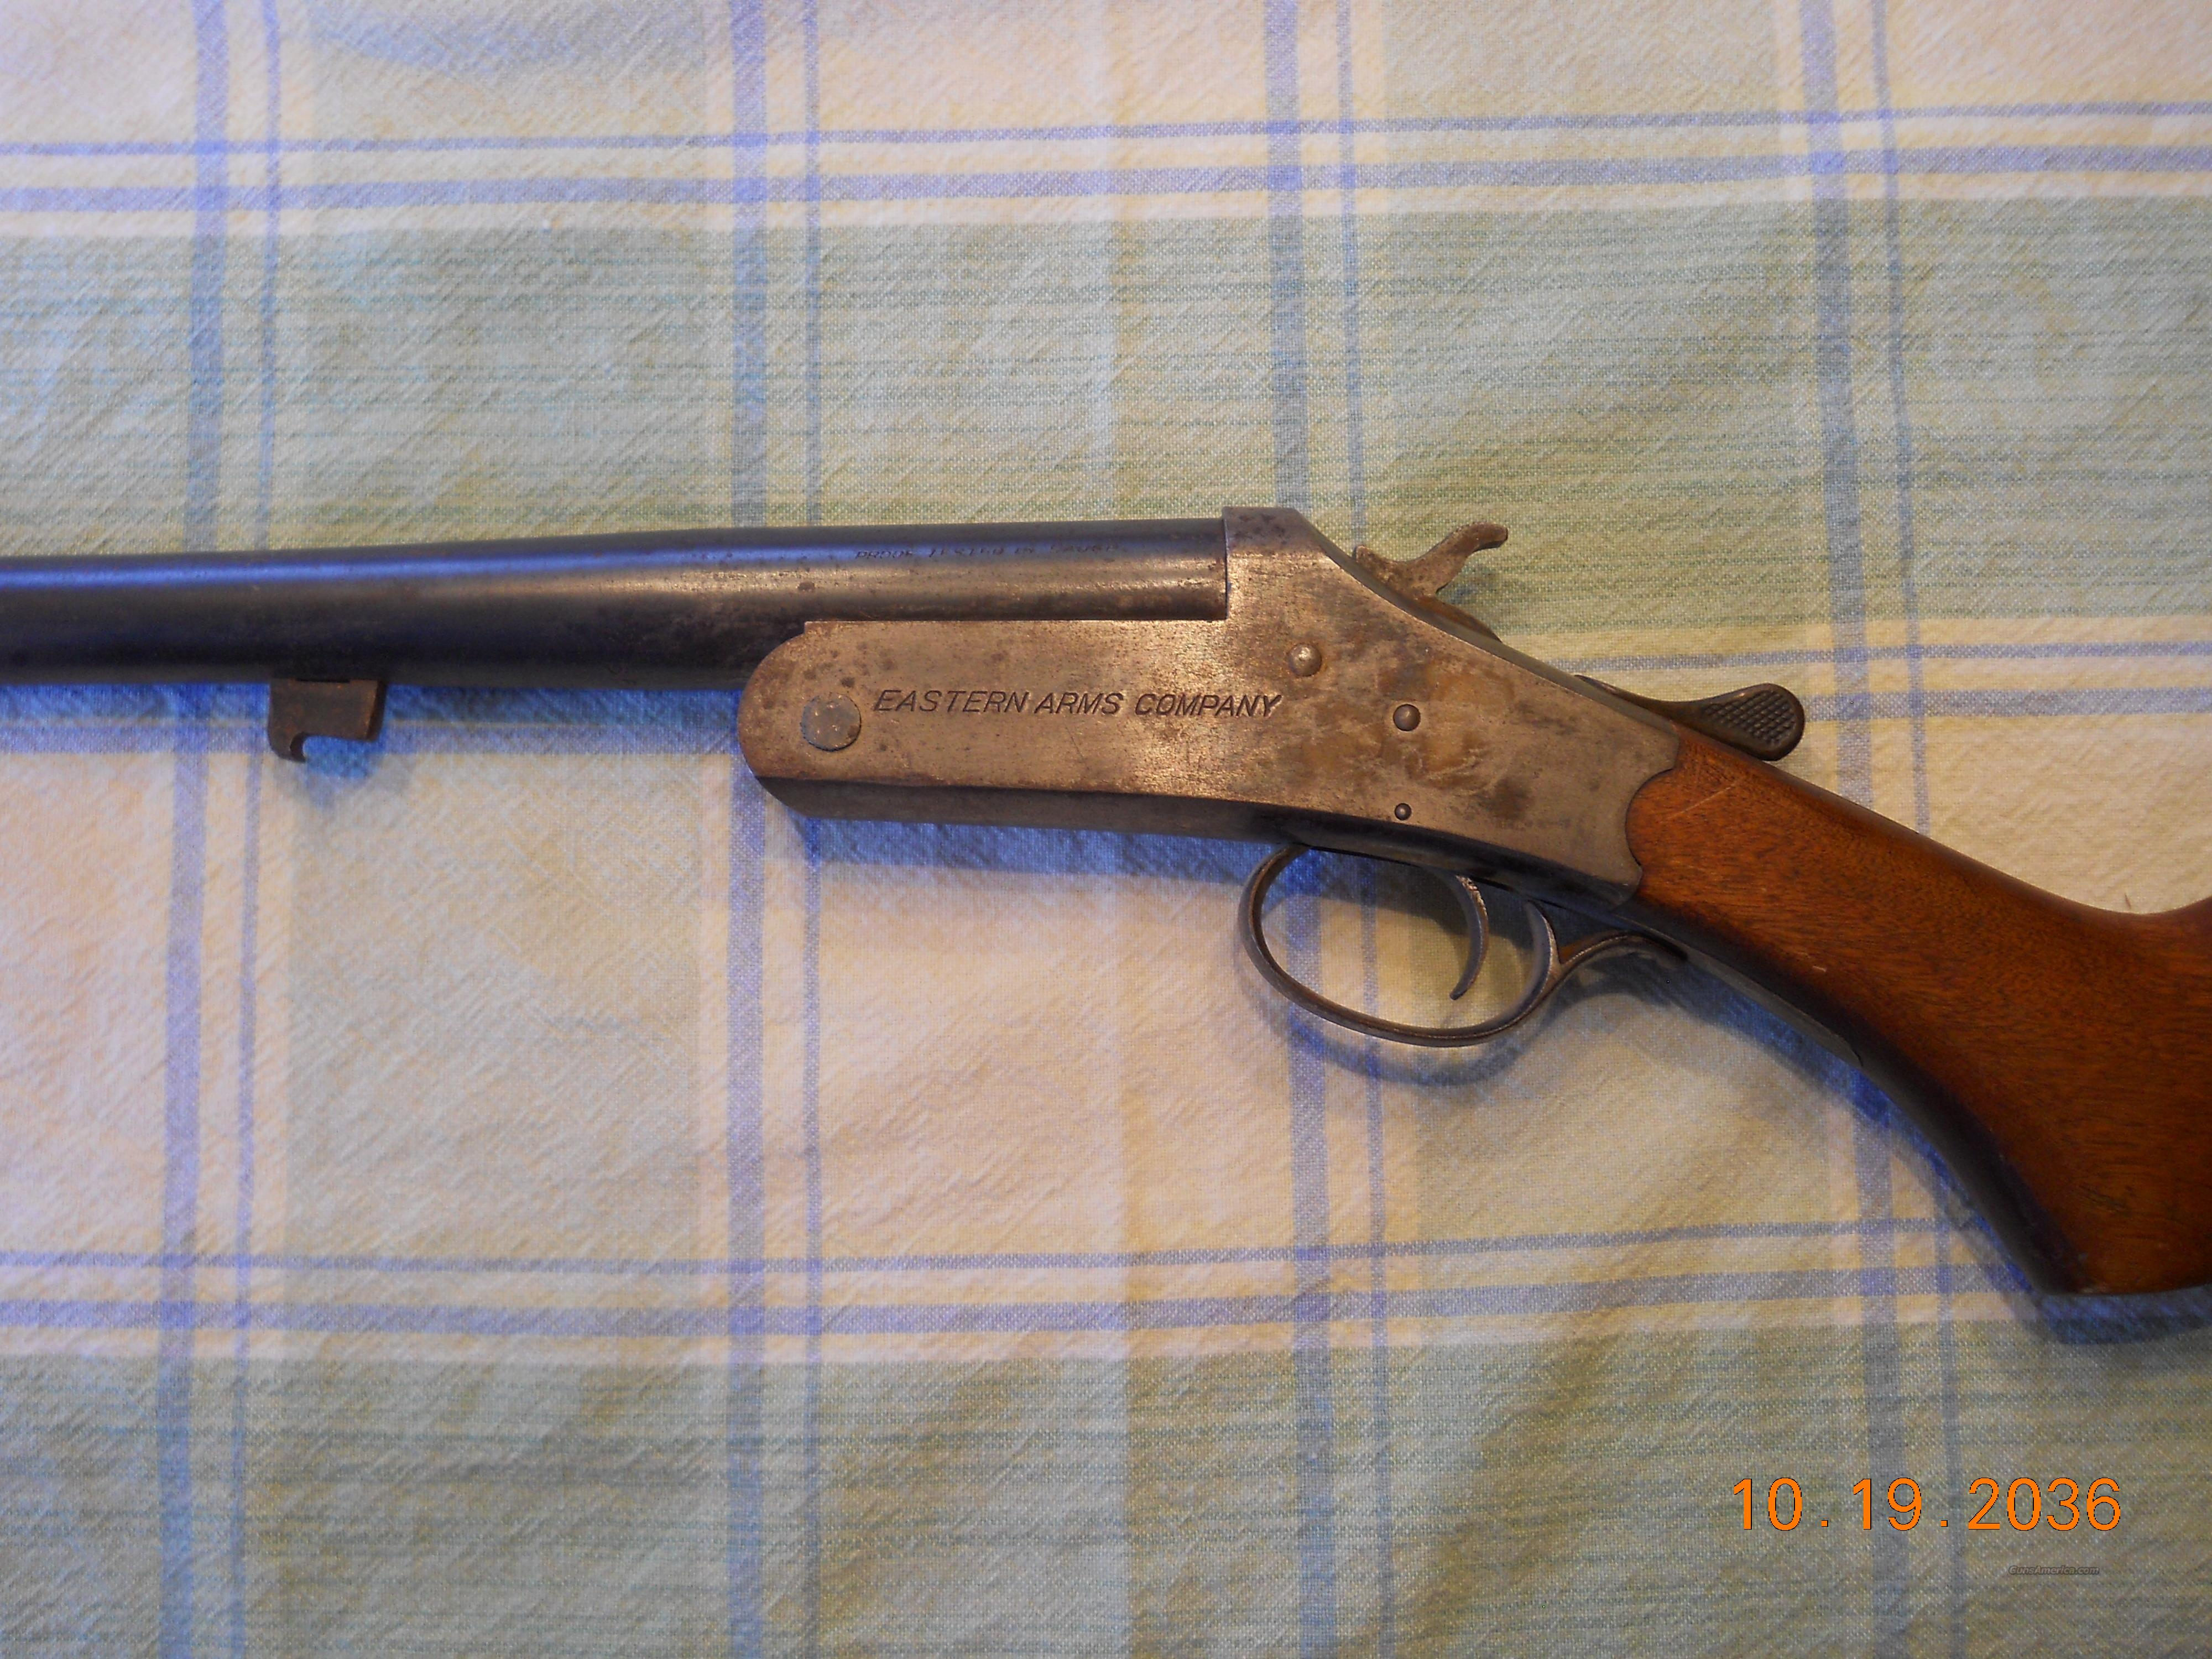 EASTERN ARMS COMPANY (STEVENS) .16 GUAGE SINGLE SHOT SHOTGUN  Guns > Shotguns > E Misc Shotguns